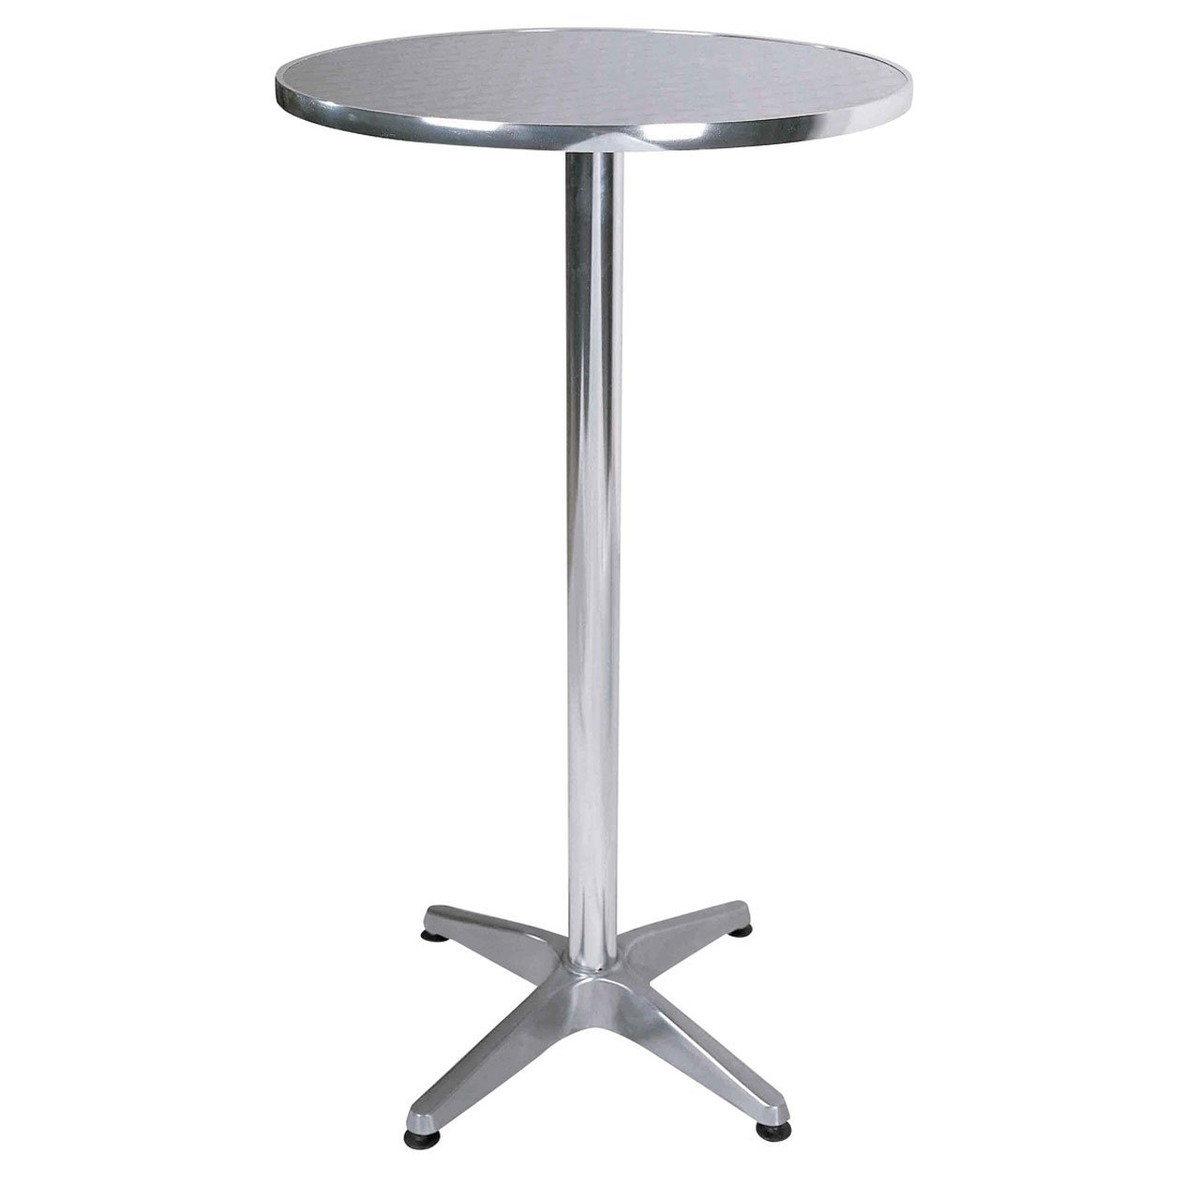 Secondhand Pub Equipment Poseur Tables Bolero Poseur